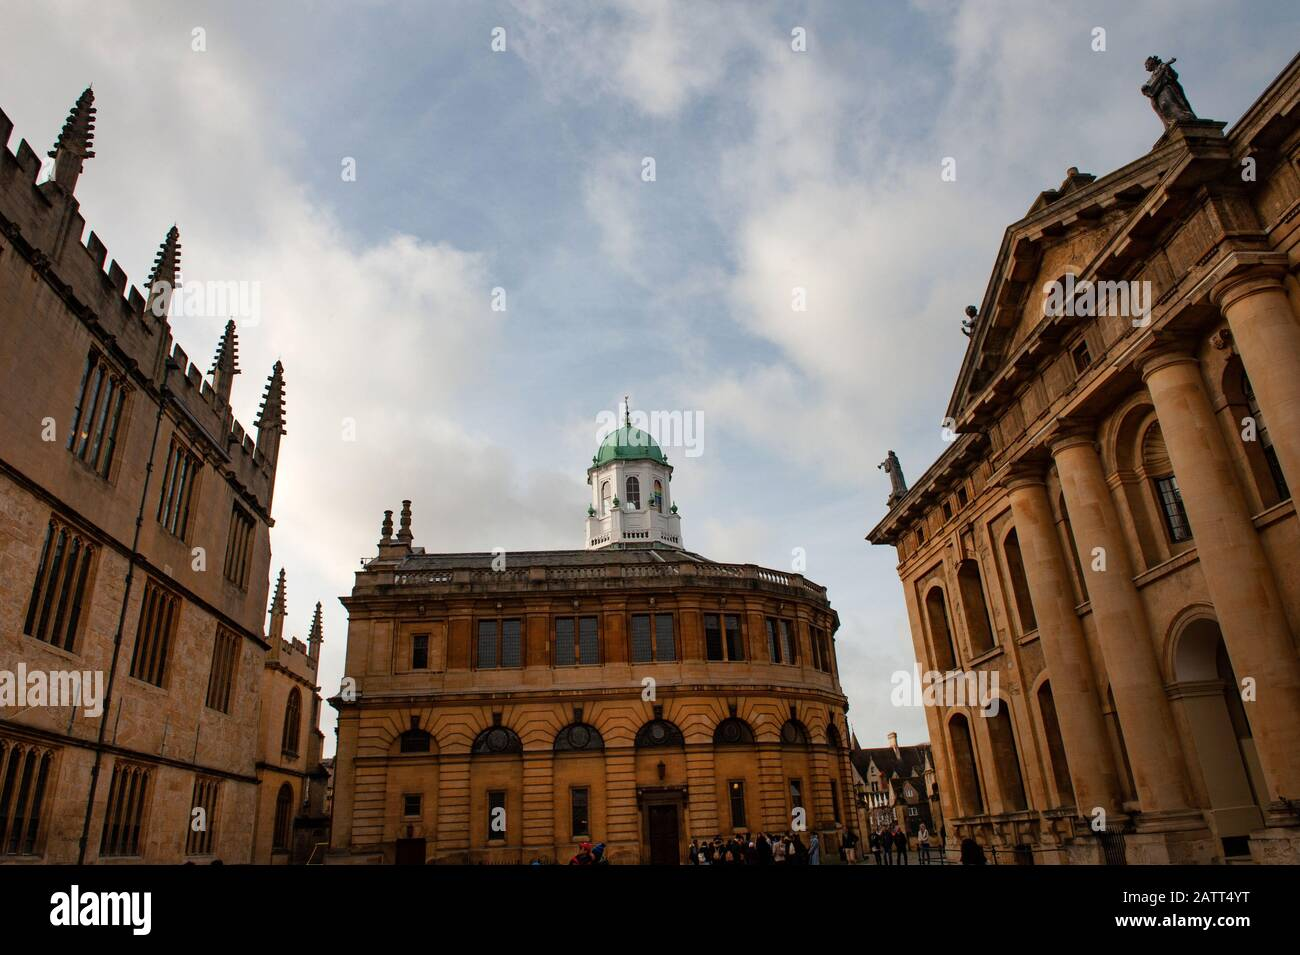 Oxford, England, UK. February 2nd, 2020 The Sheldonian Theatre, Broad Street, Oxford City. Stock Photo